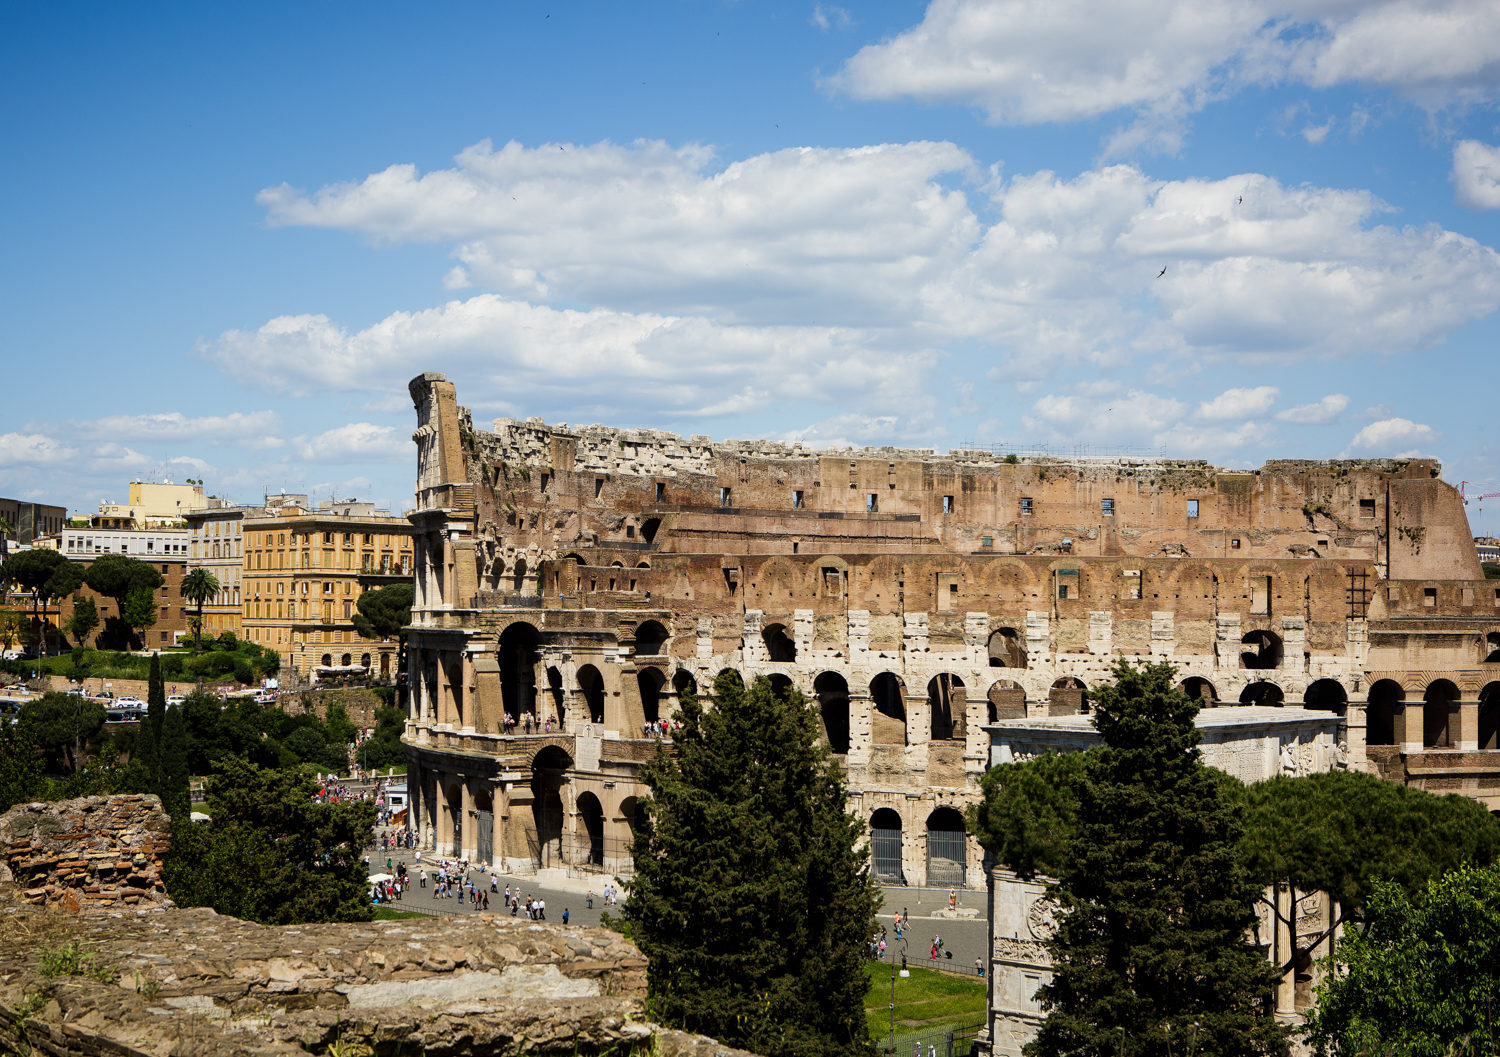 Colosseum as seen from Palatine Hill